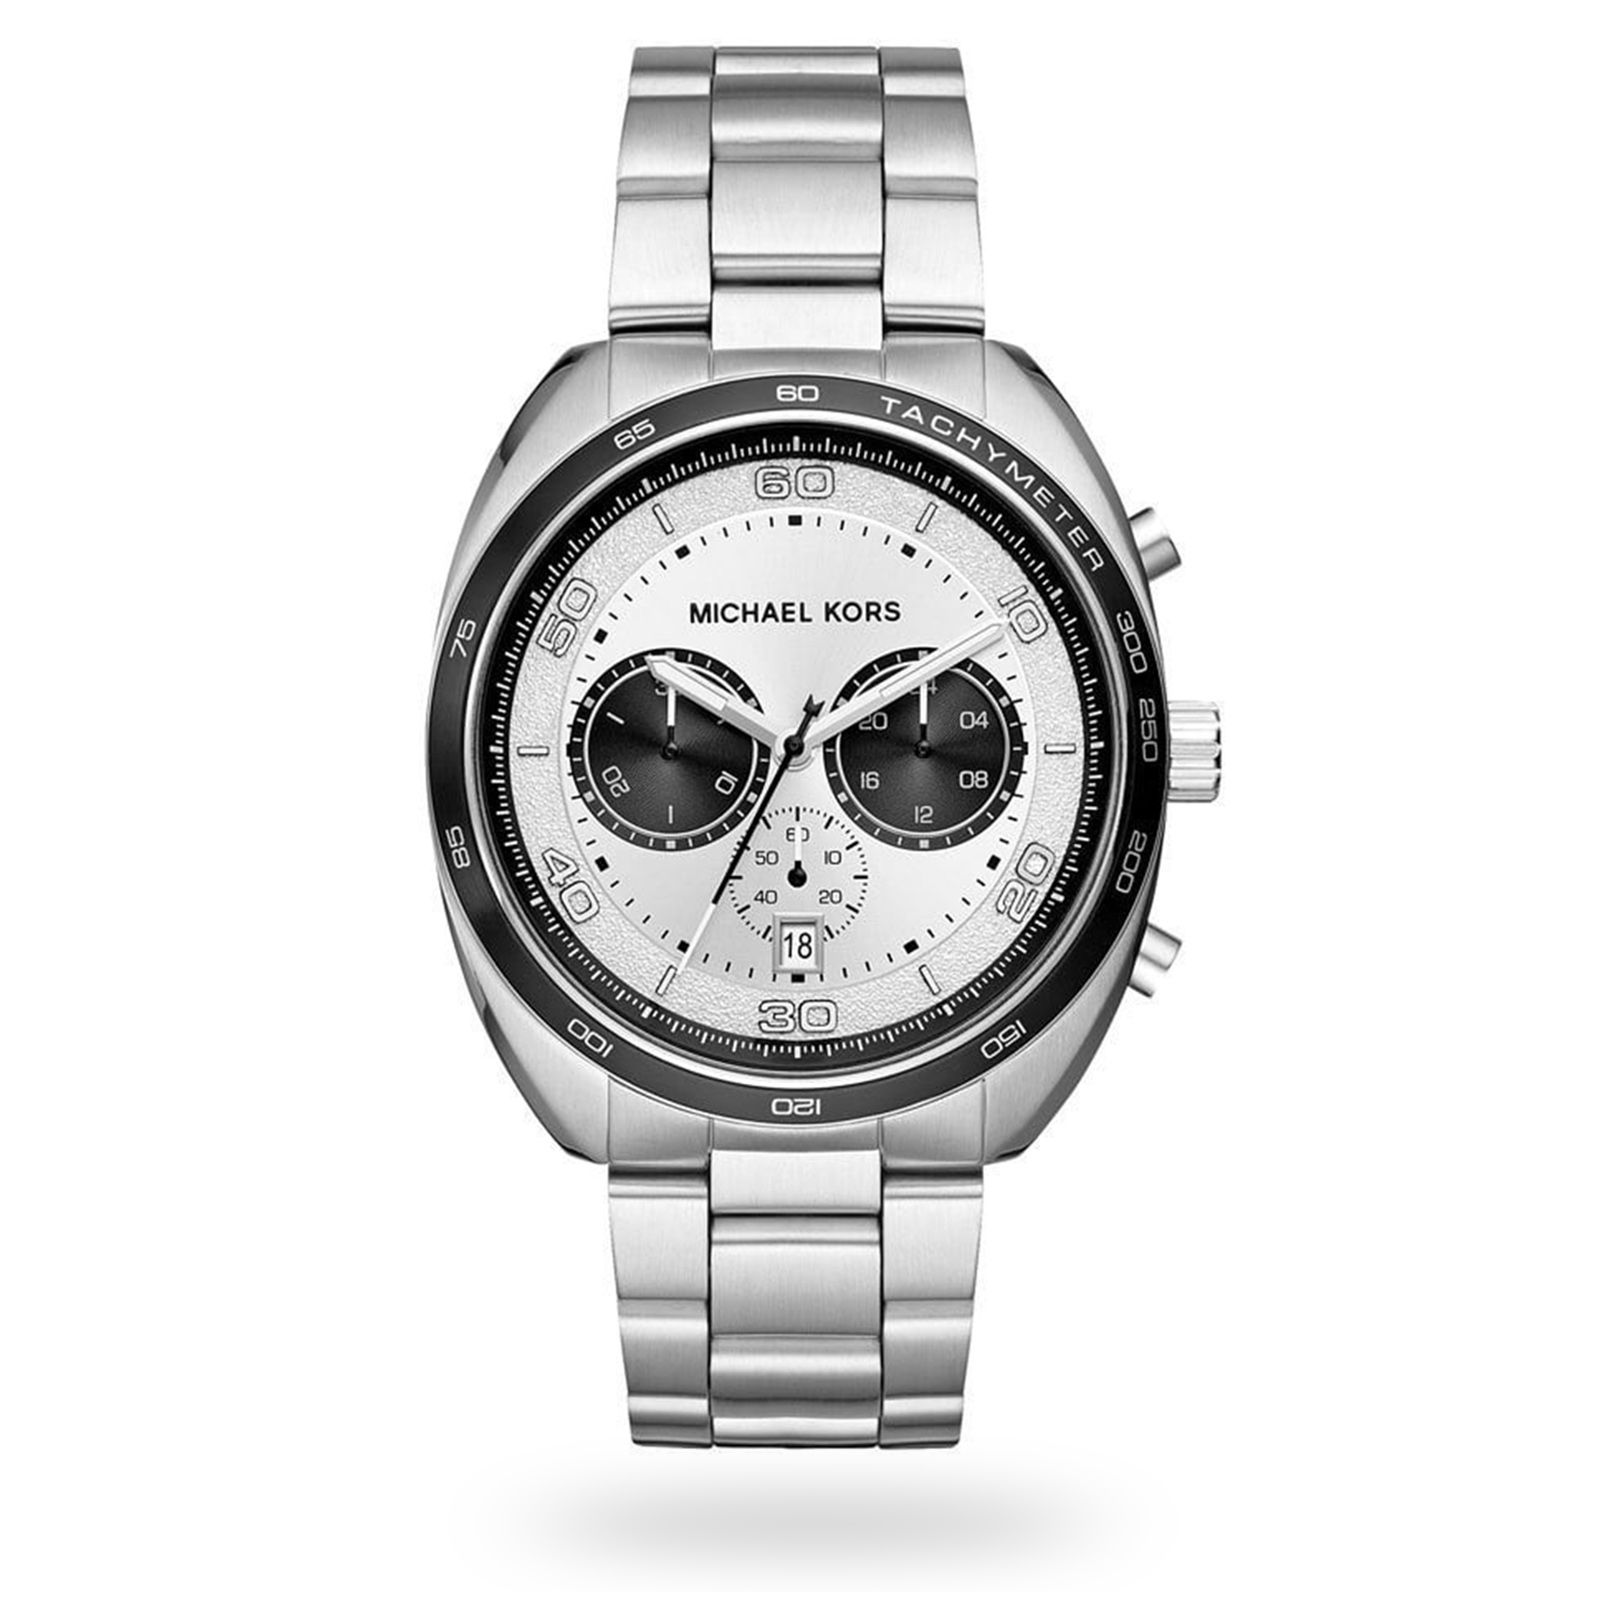 Michael Kors Stainless Steel Chronograph Mens Watch